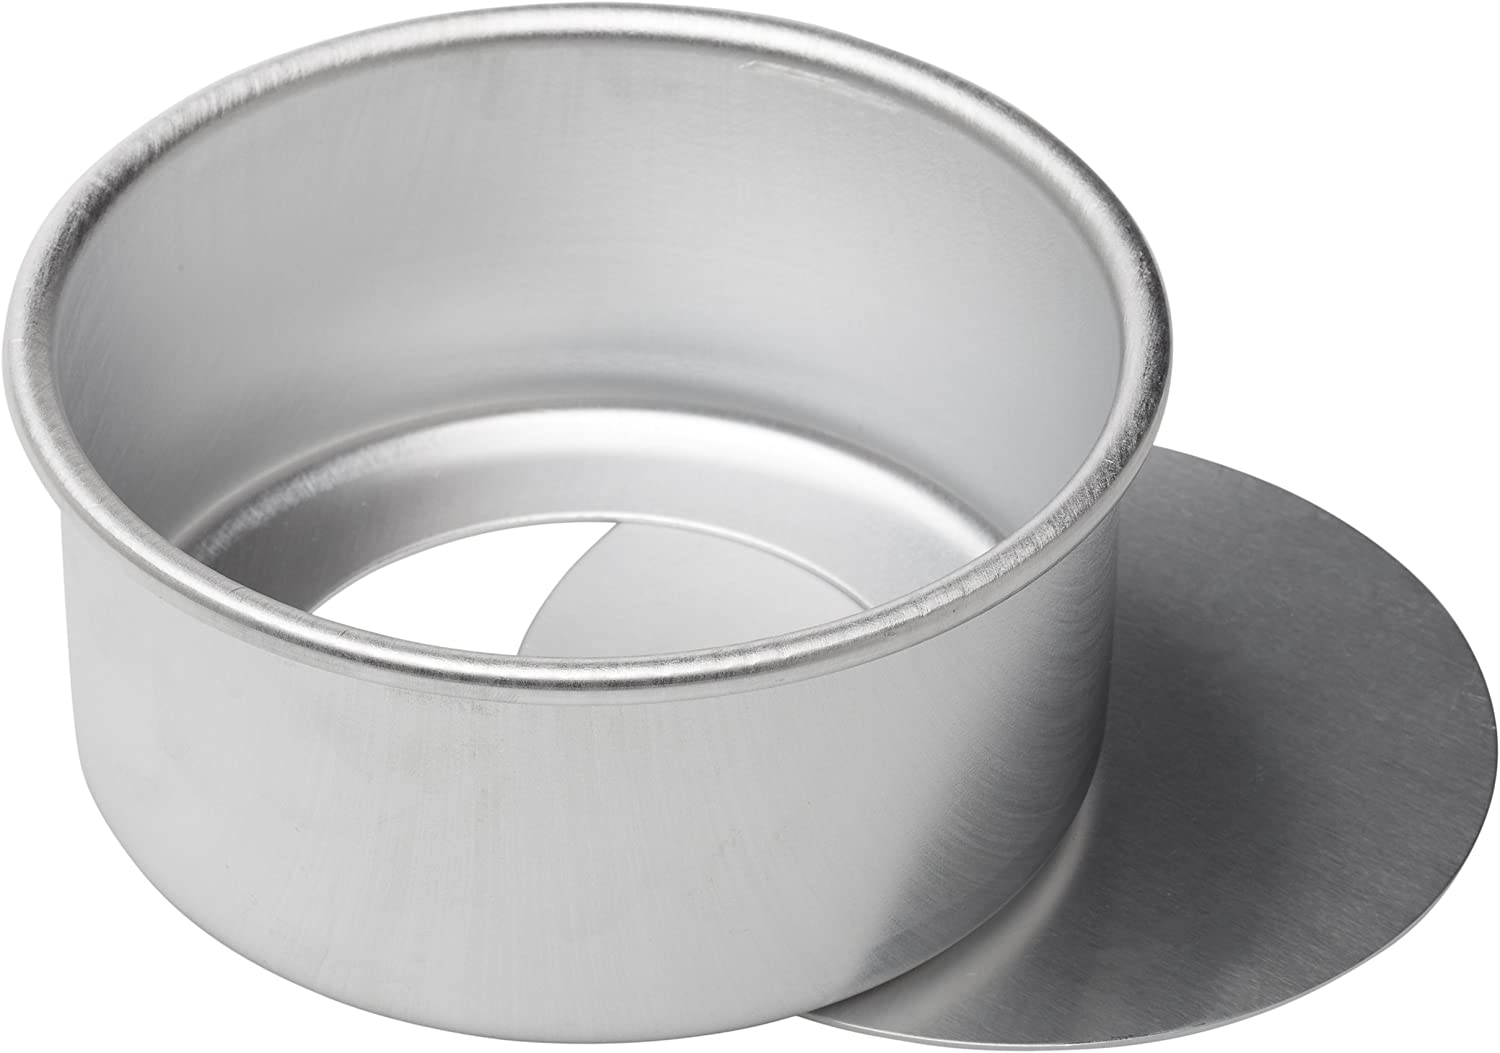 Ateco Aluminum Cake Pan with Removable Bottom, 6 by 3-Inch, Round